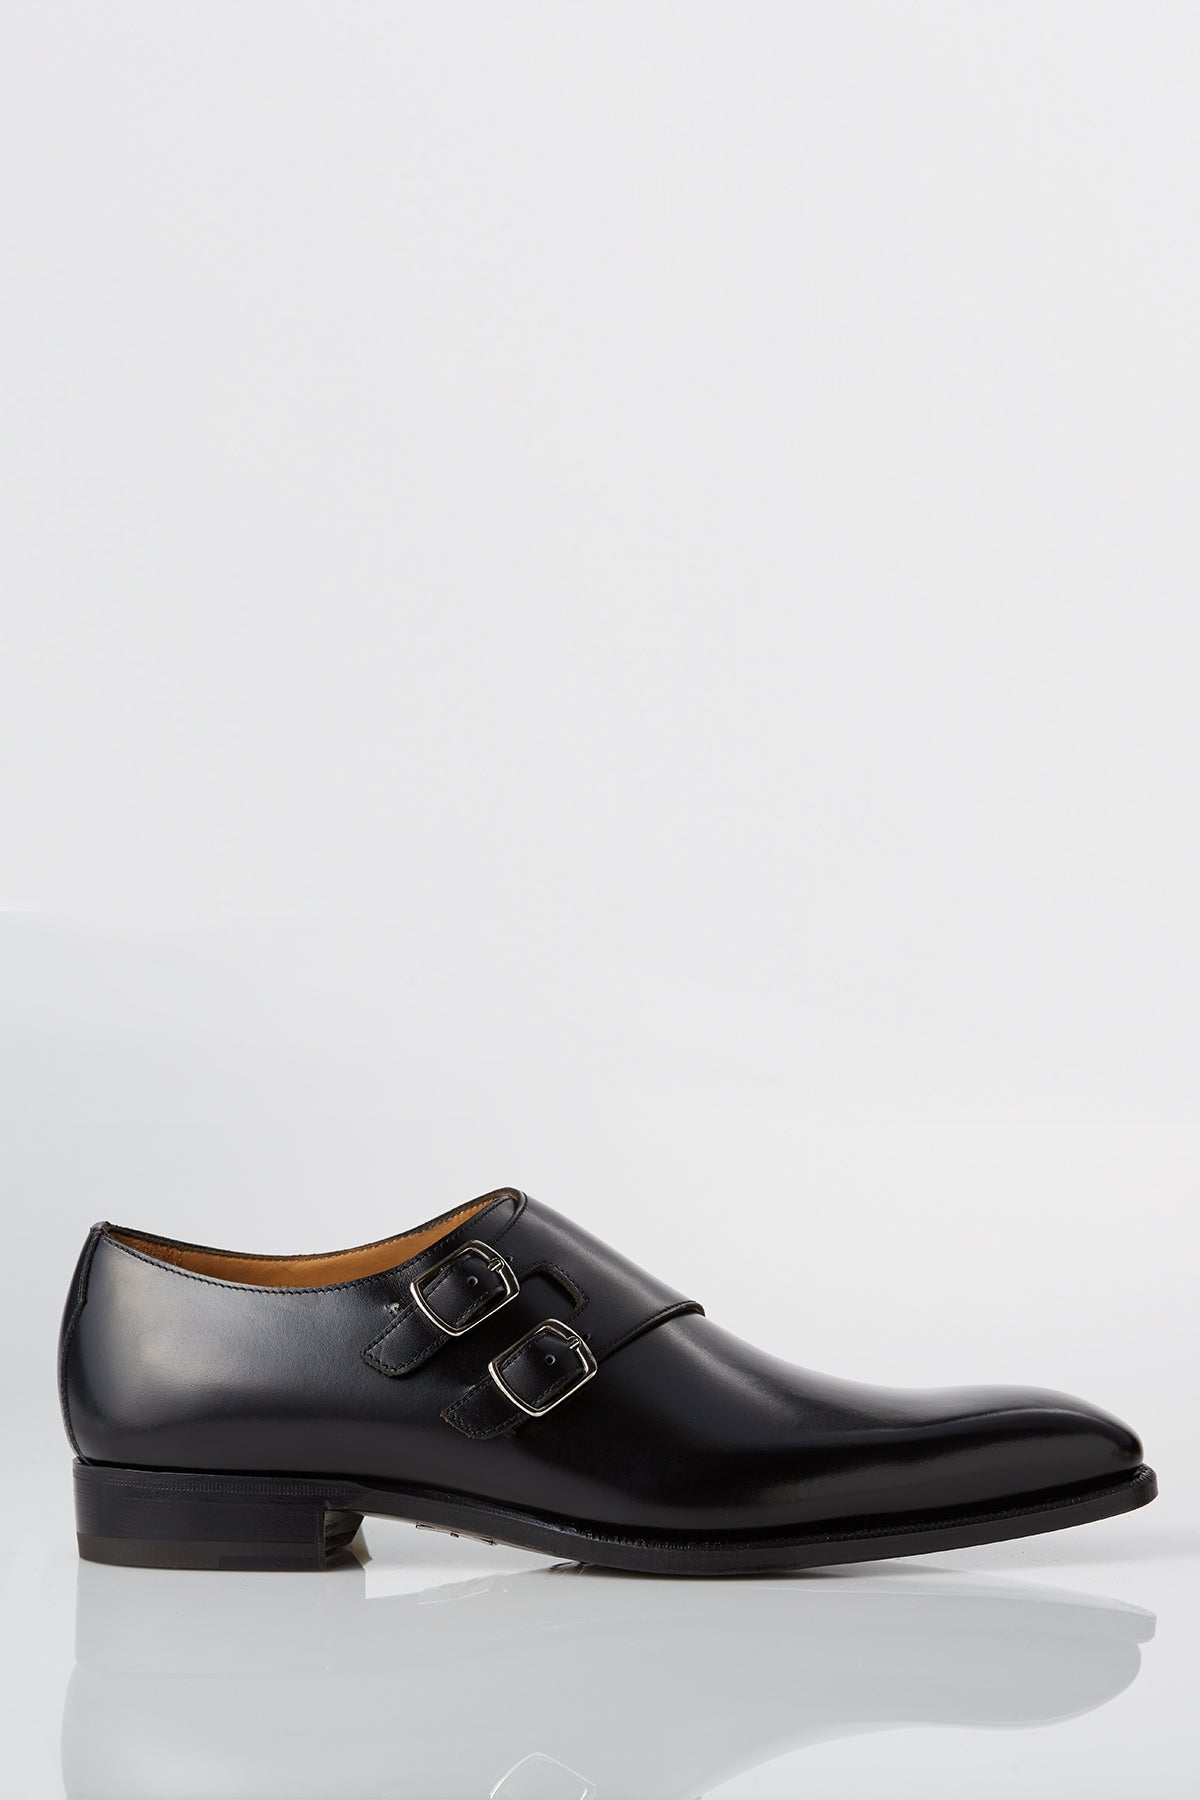 David August Leather Double Monk-strap Shoes in Black Di Bianco